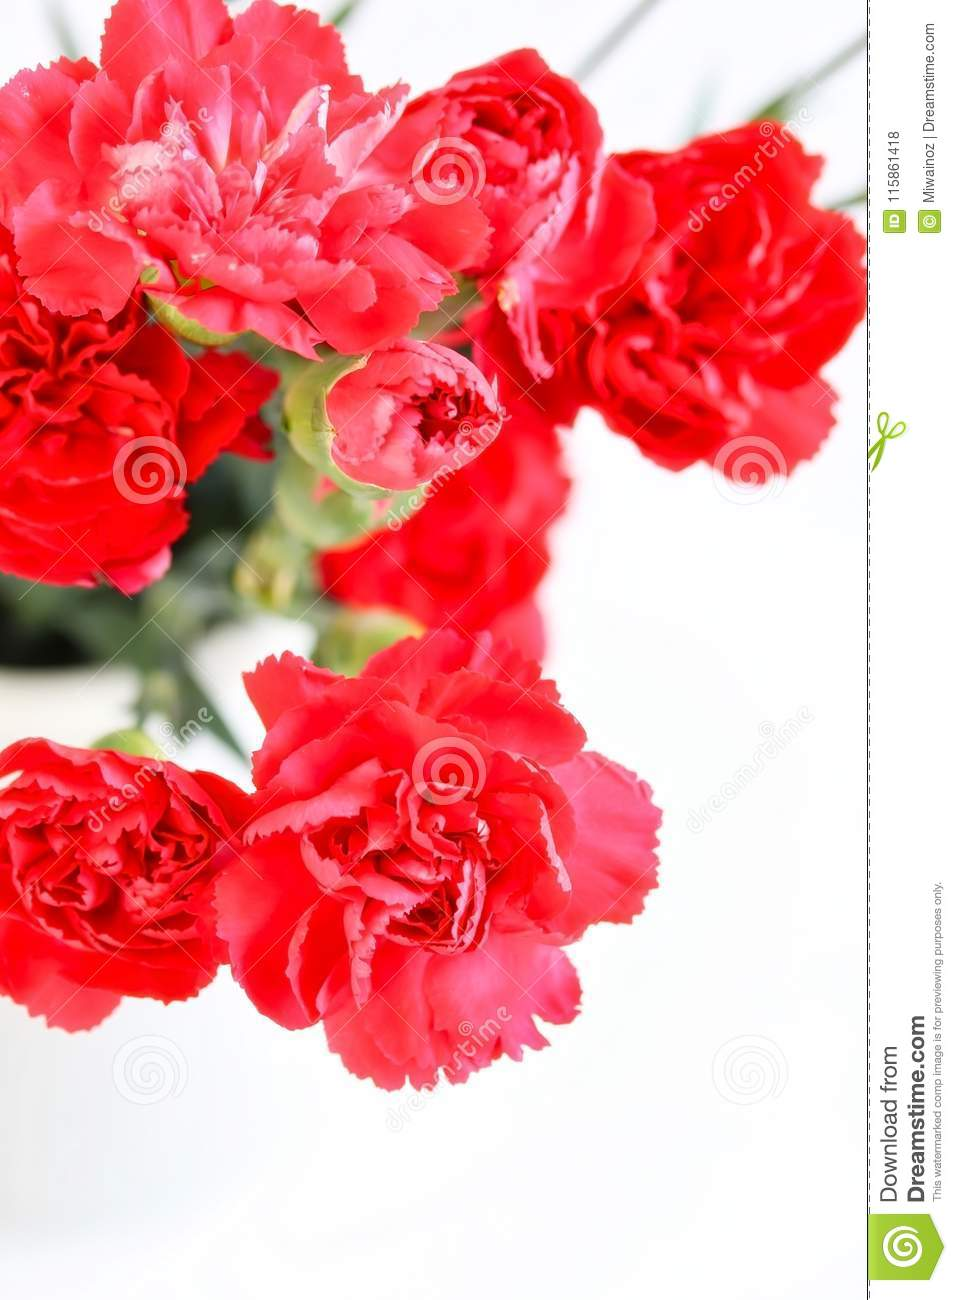 Bunch Of Beautiful Red Carnation Flowers Stock Photo Image Of